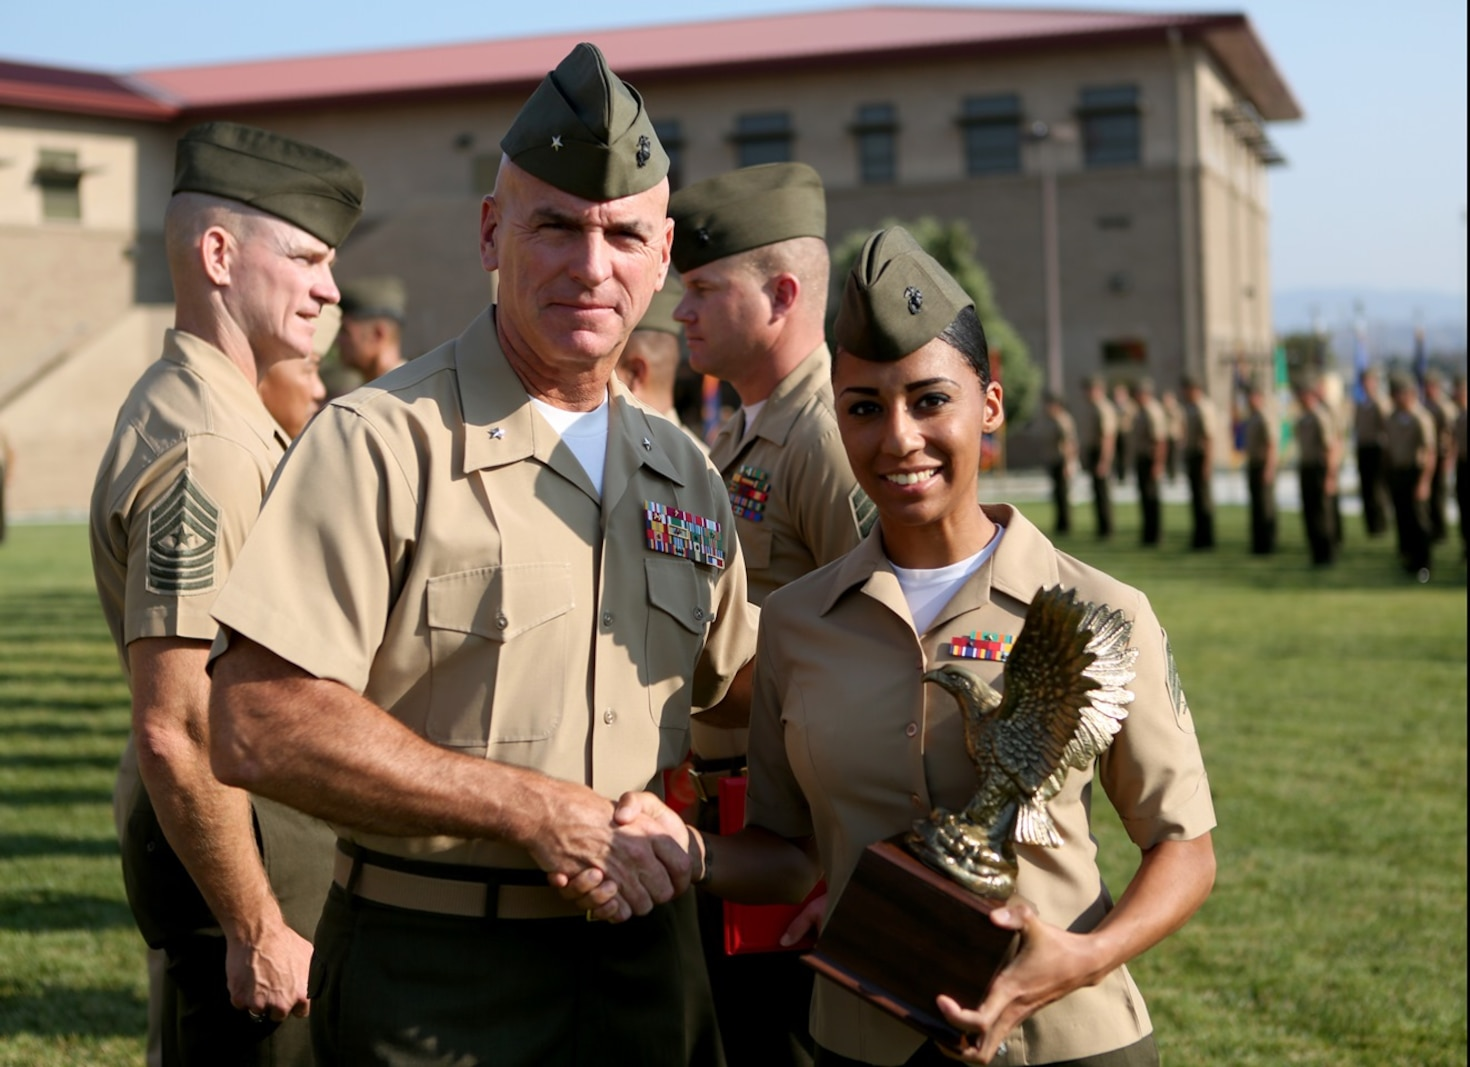 U.S. Marine Brig. Gen. David A. Ottignon presents Sgt. Lara Deleon with the I Marine Expeditionary Force Navy and Marine Corps Association Leadership Award at the 1st Marine Logistics Group quarterly awards ceremony aboard Camp Pendleton Calif., July 29, 2016. Ottignon is the 1st MLG commanding general and Deleon is a maintenance chief with Headquarters Regiment. Deleon was one of the Marines recognized at the ceremony for their outstanding achievements in the performance of their duties for the fiscal year 2016 third quarter. (U.S. Marine Corps photo by Sgt. Carson Gramley/released)